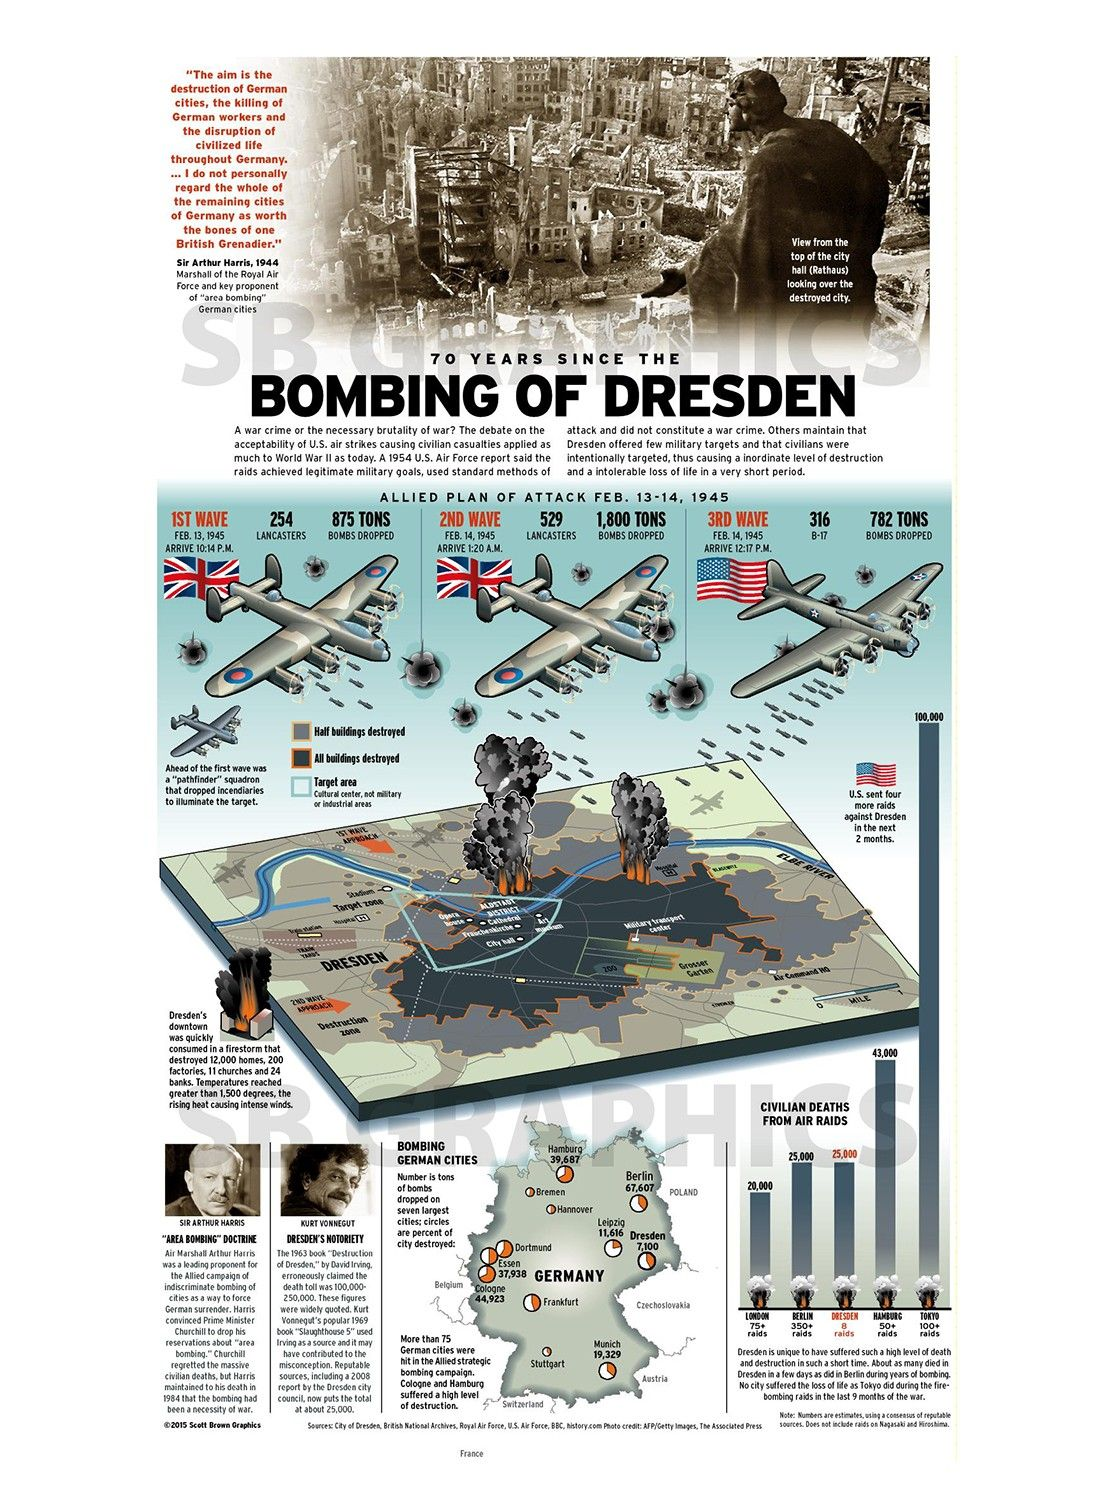 Pin by radialv on Battle and War Diagrams | Ww2 timeline